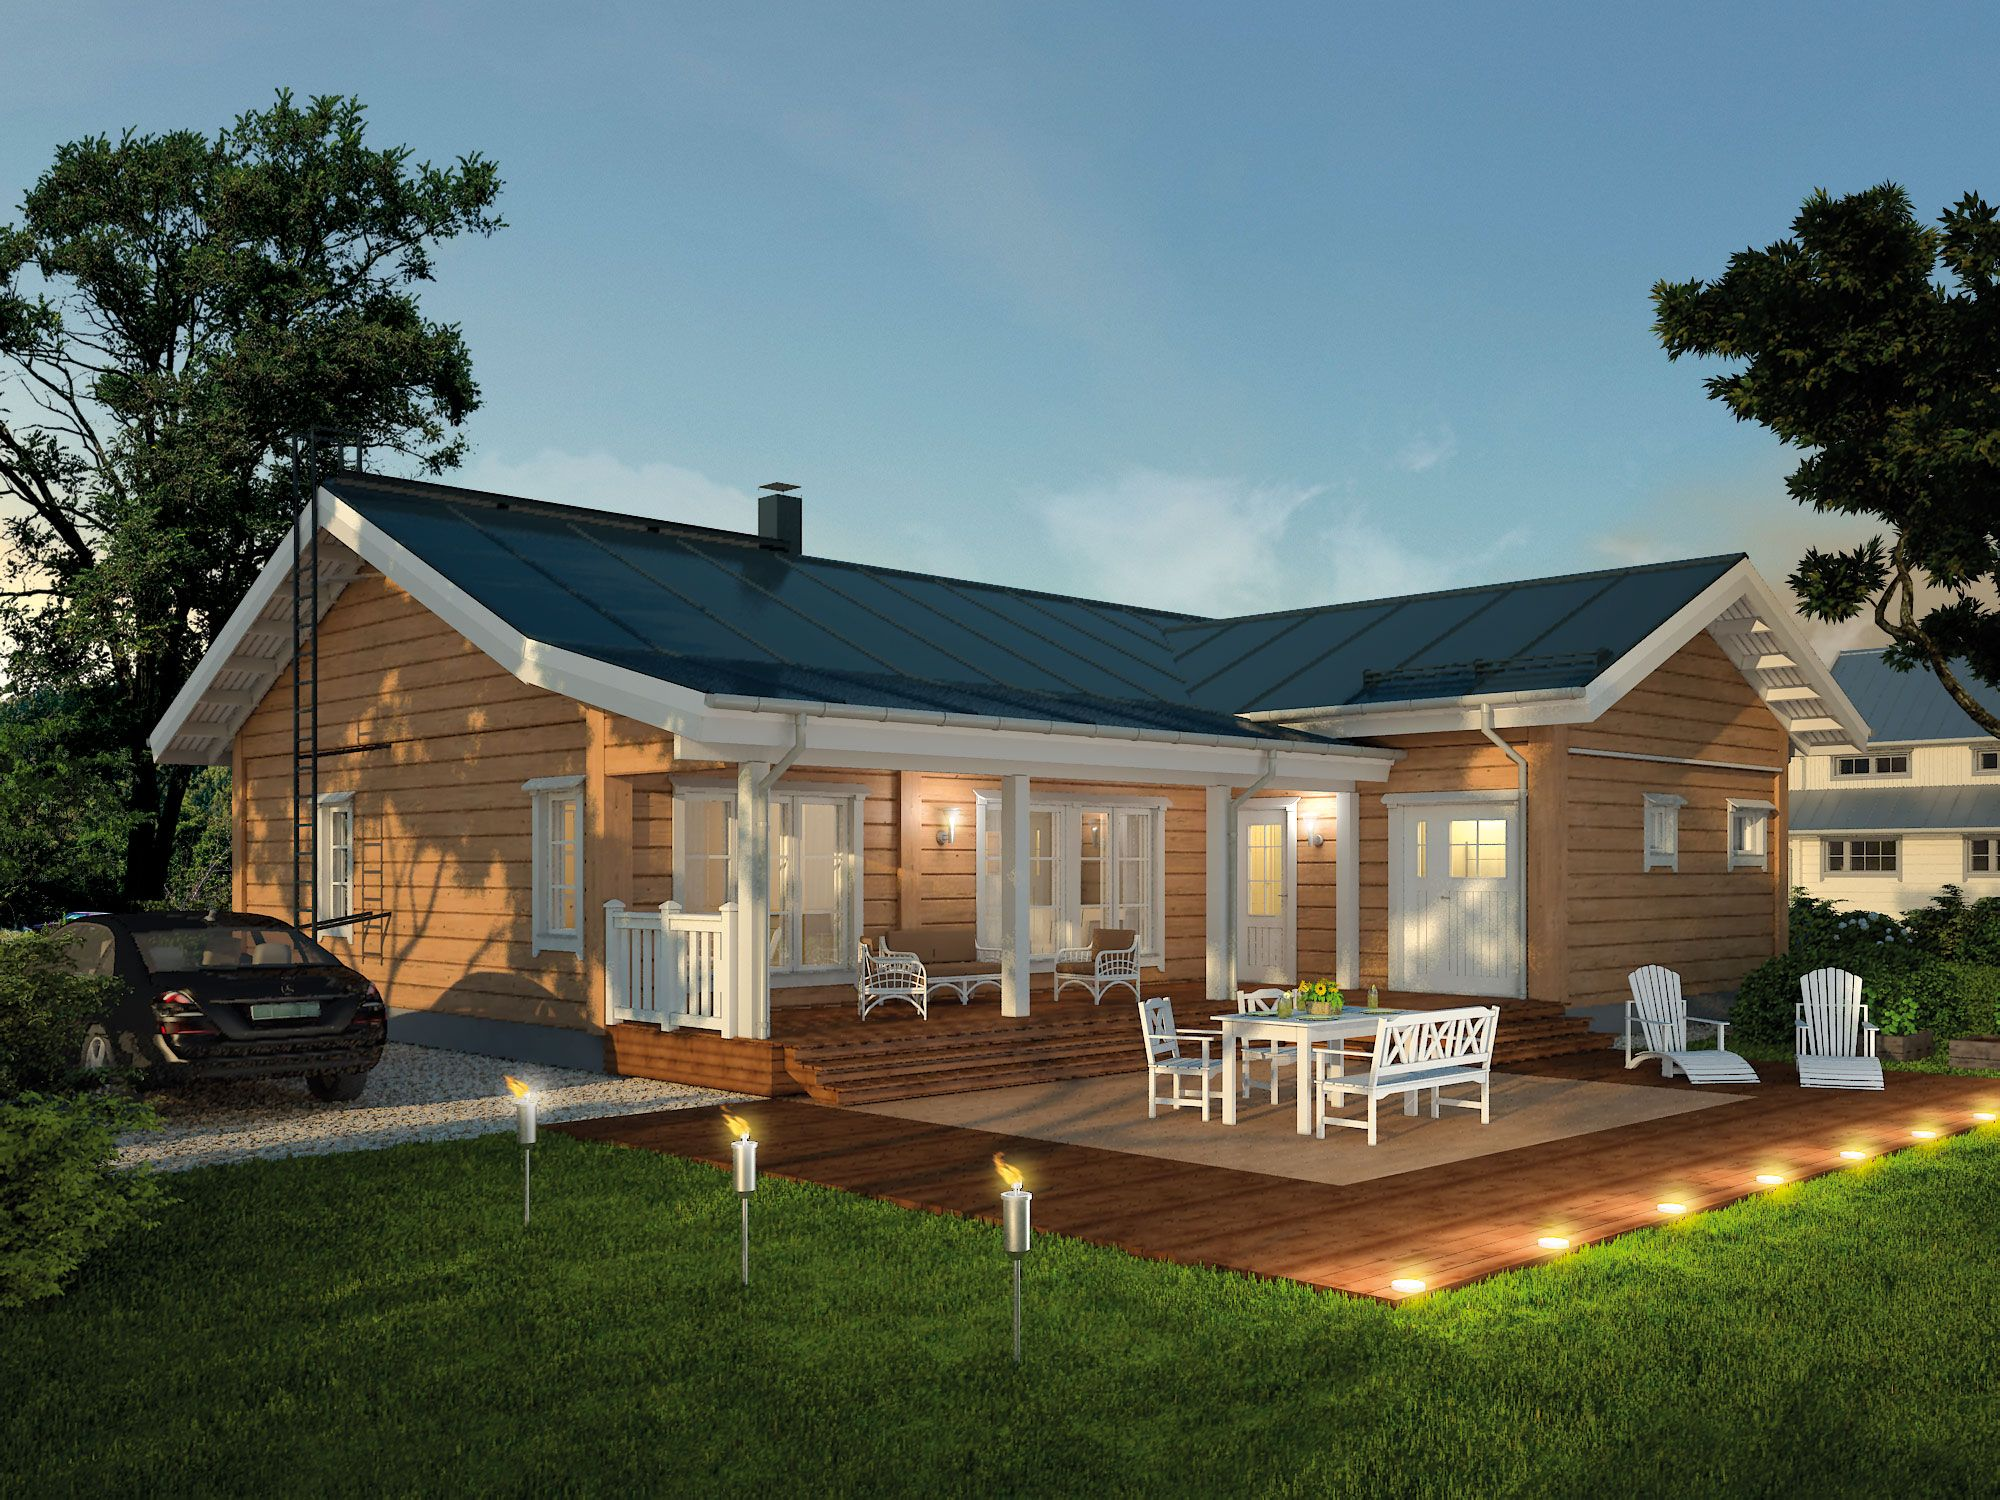 Modular Homes Modular Homes And Manufactured Homes Then Customize Your New Home To